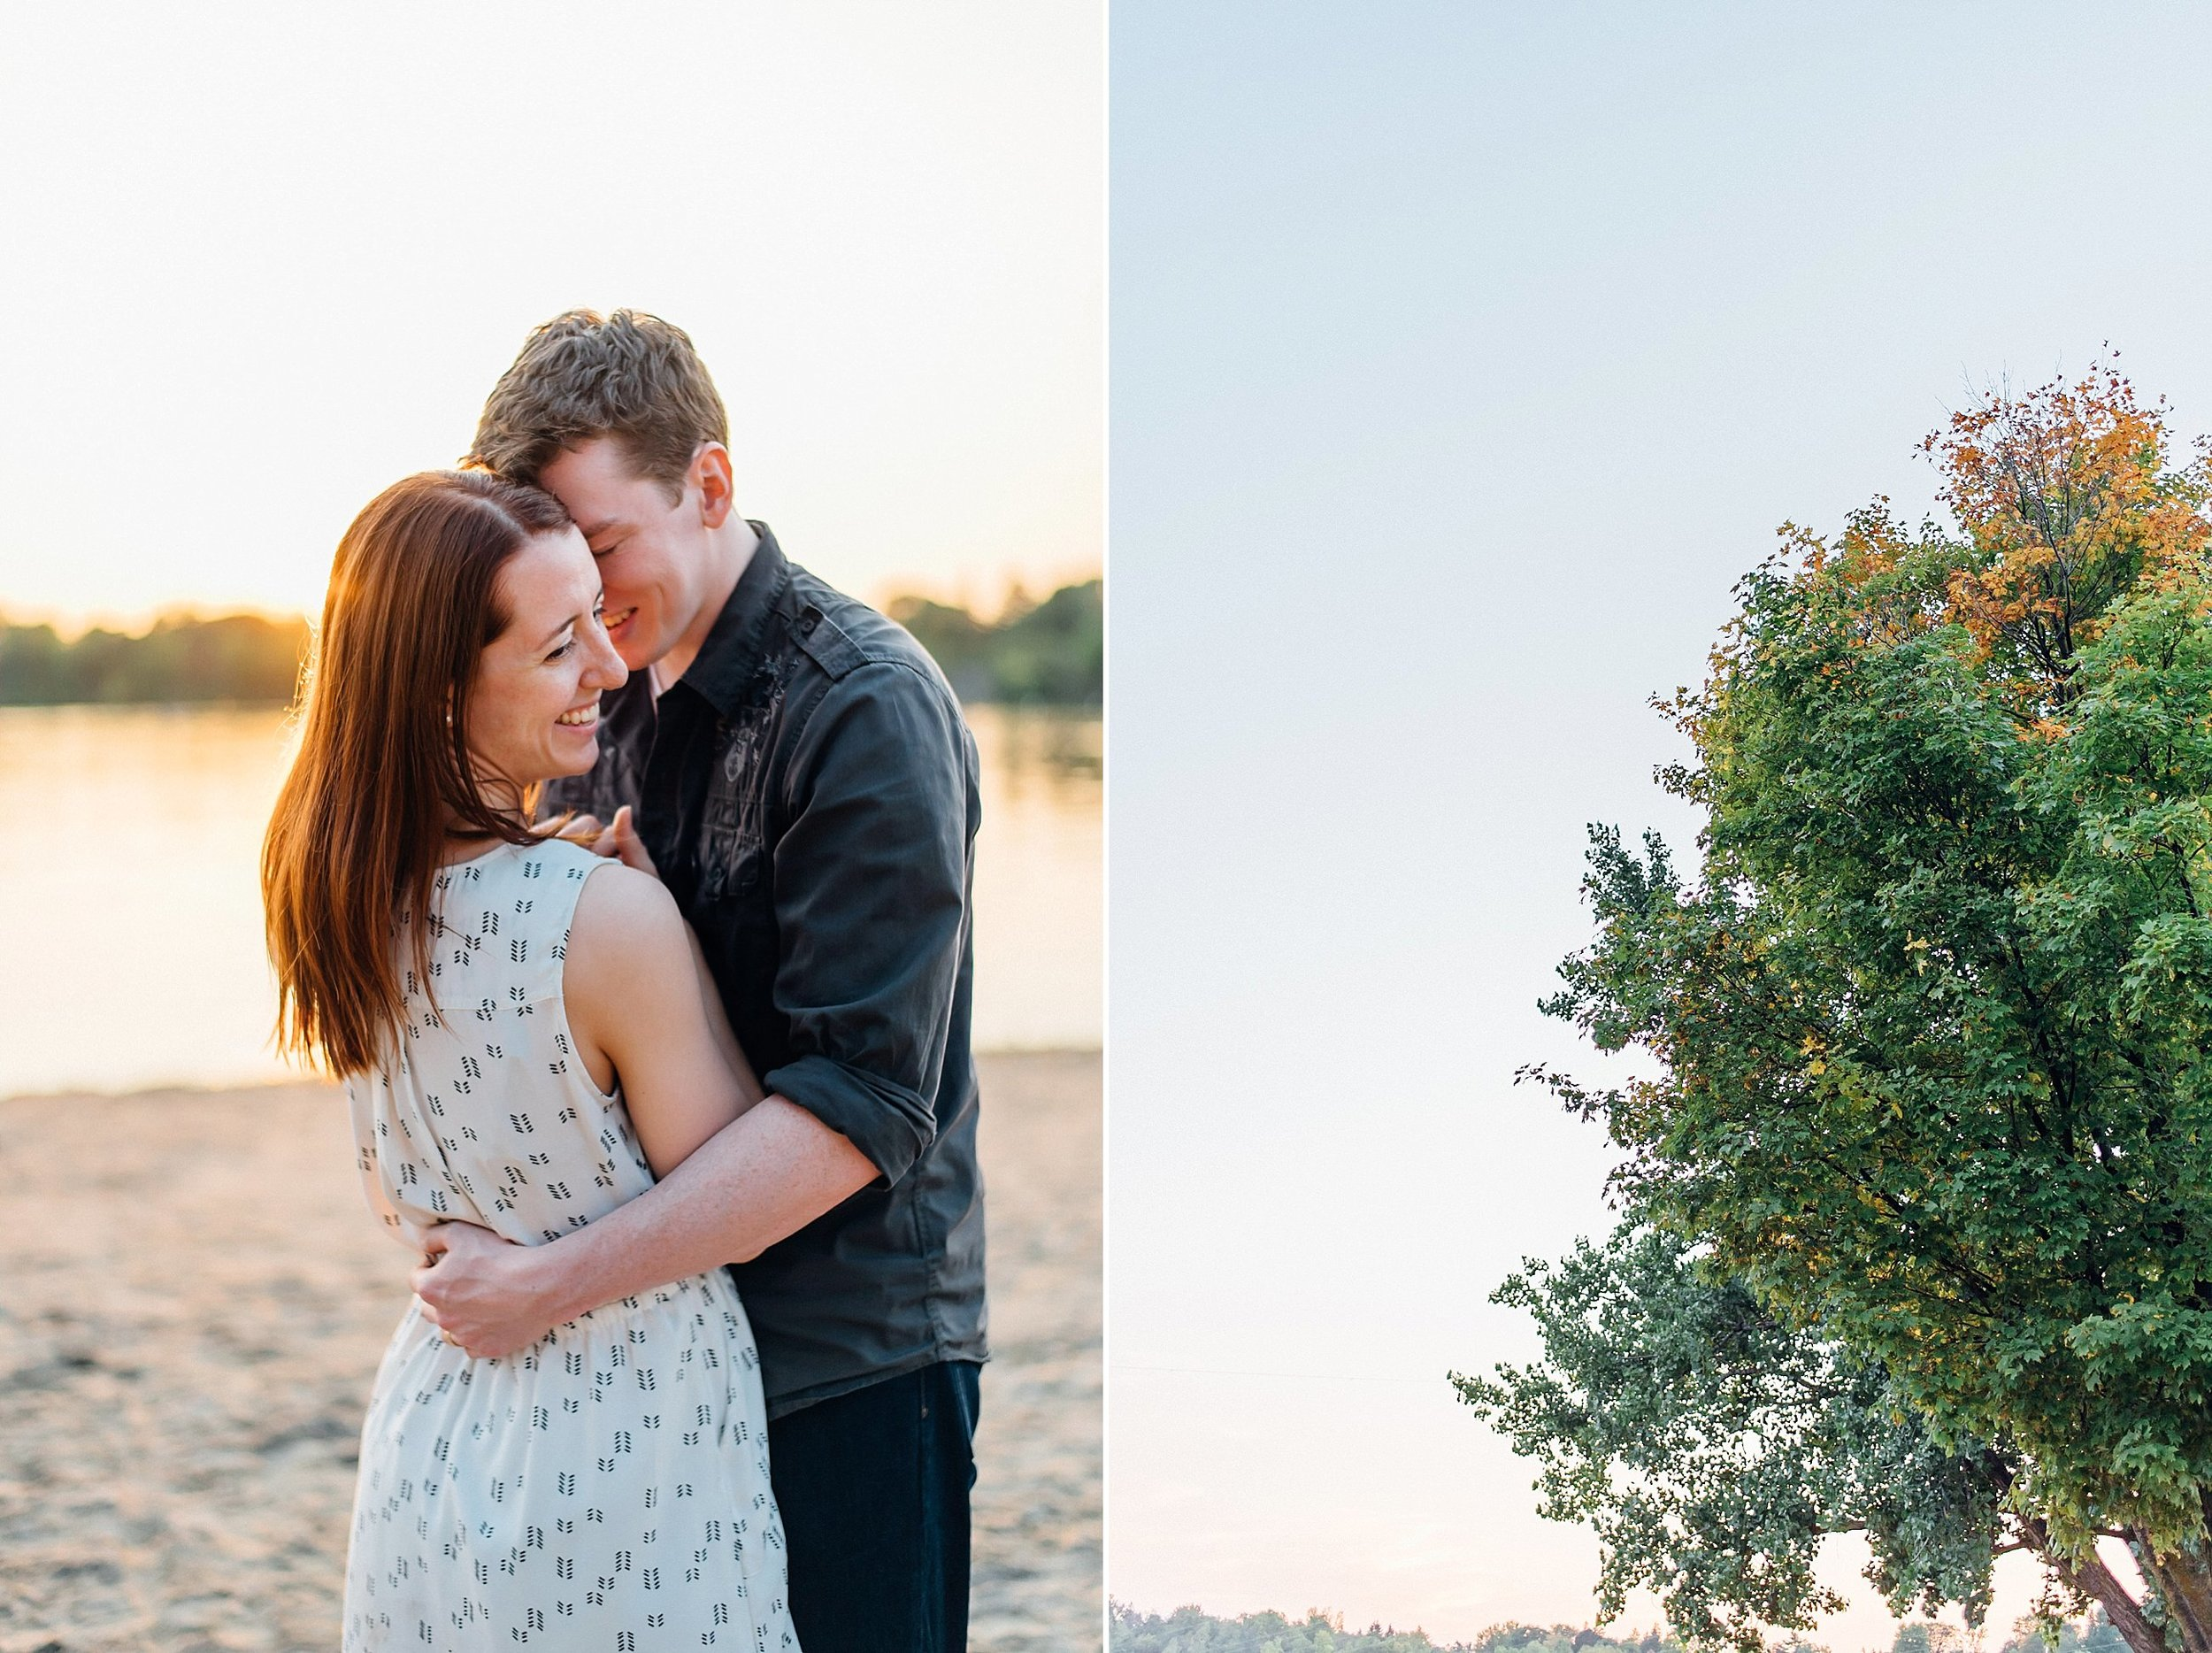 Rebecca + Dan Engagement Shoot | Ali & Batoul Photography-29.jpg